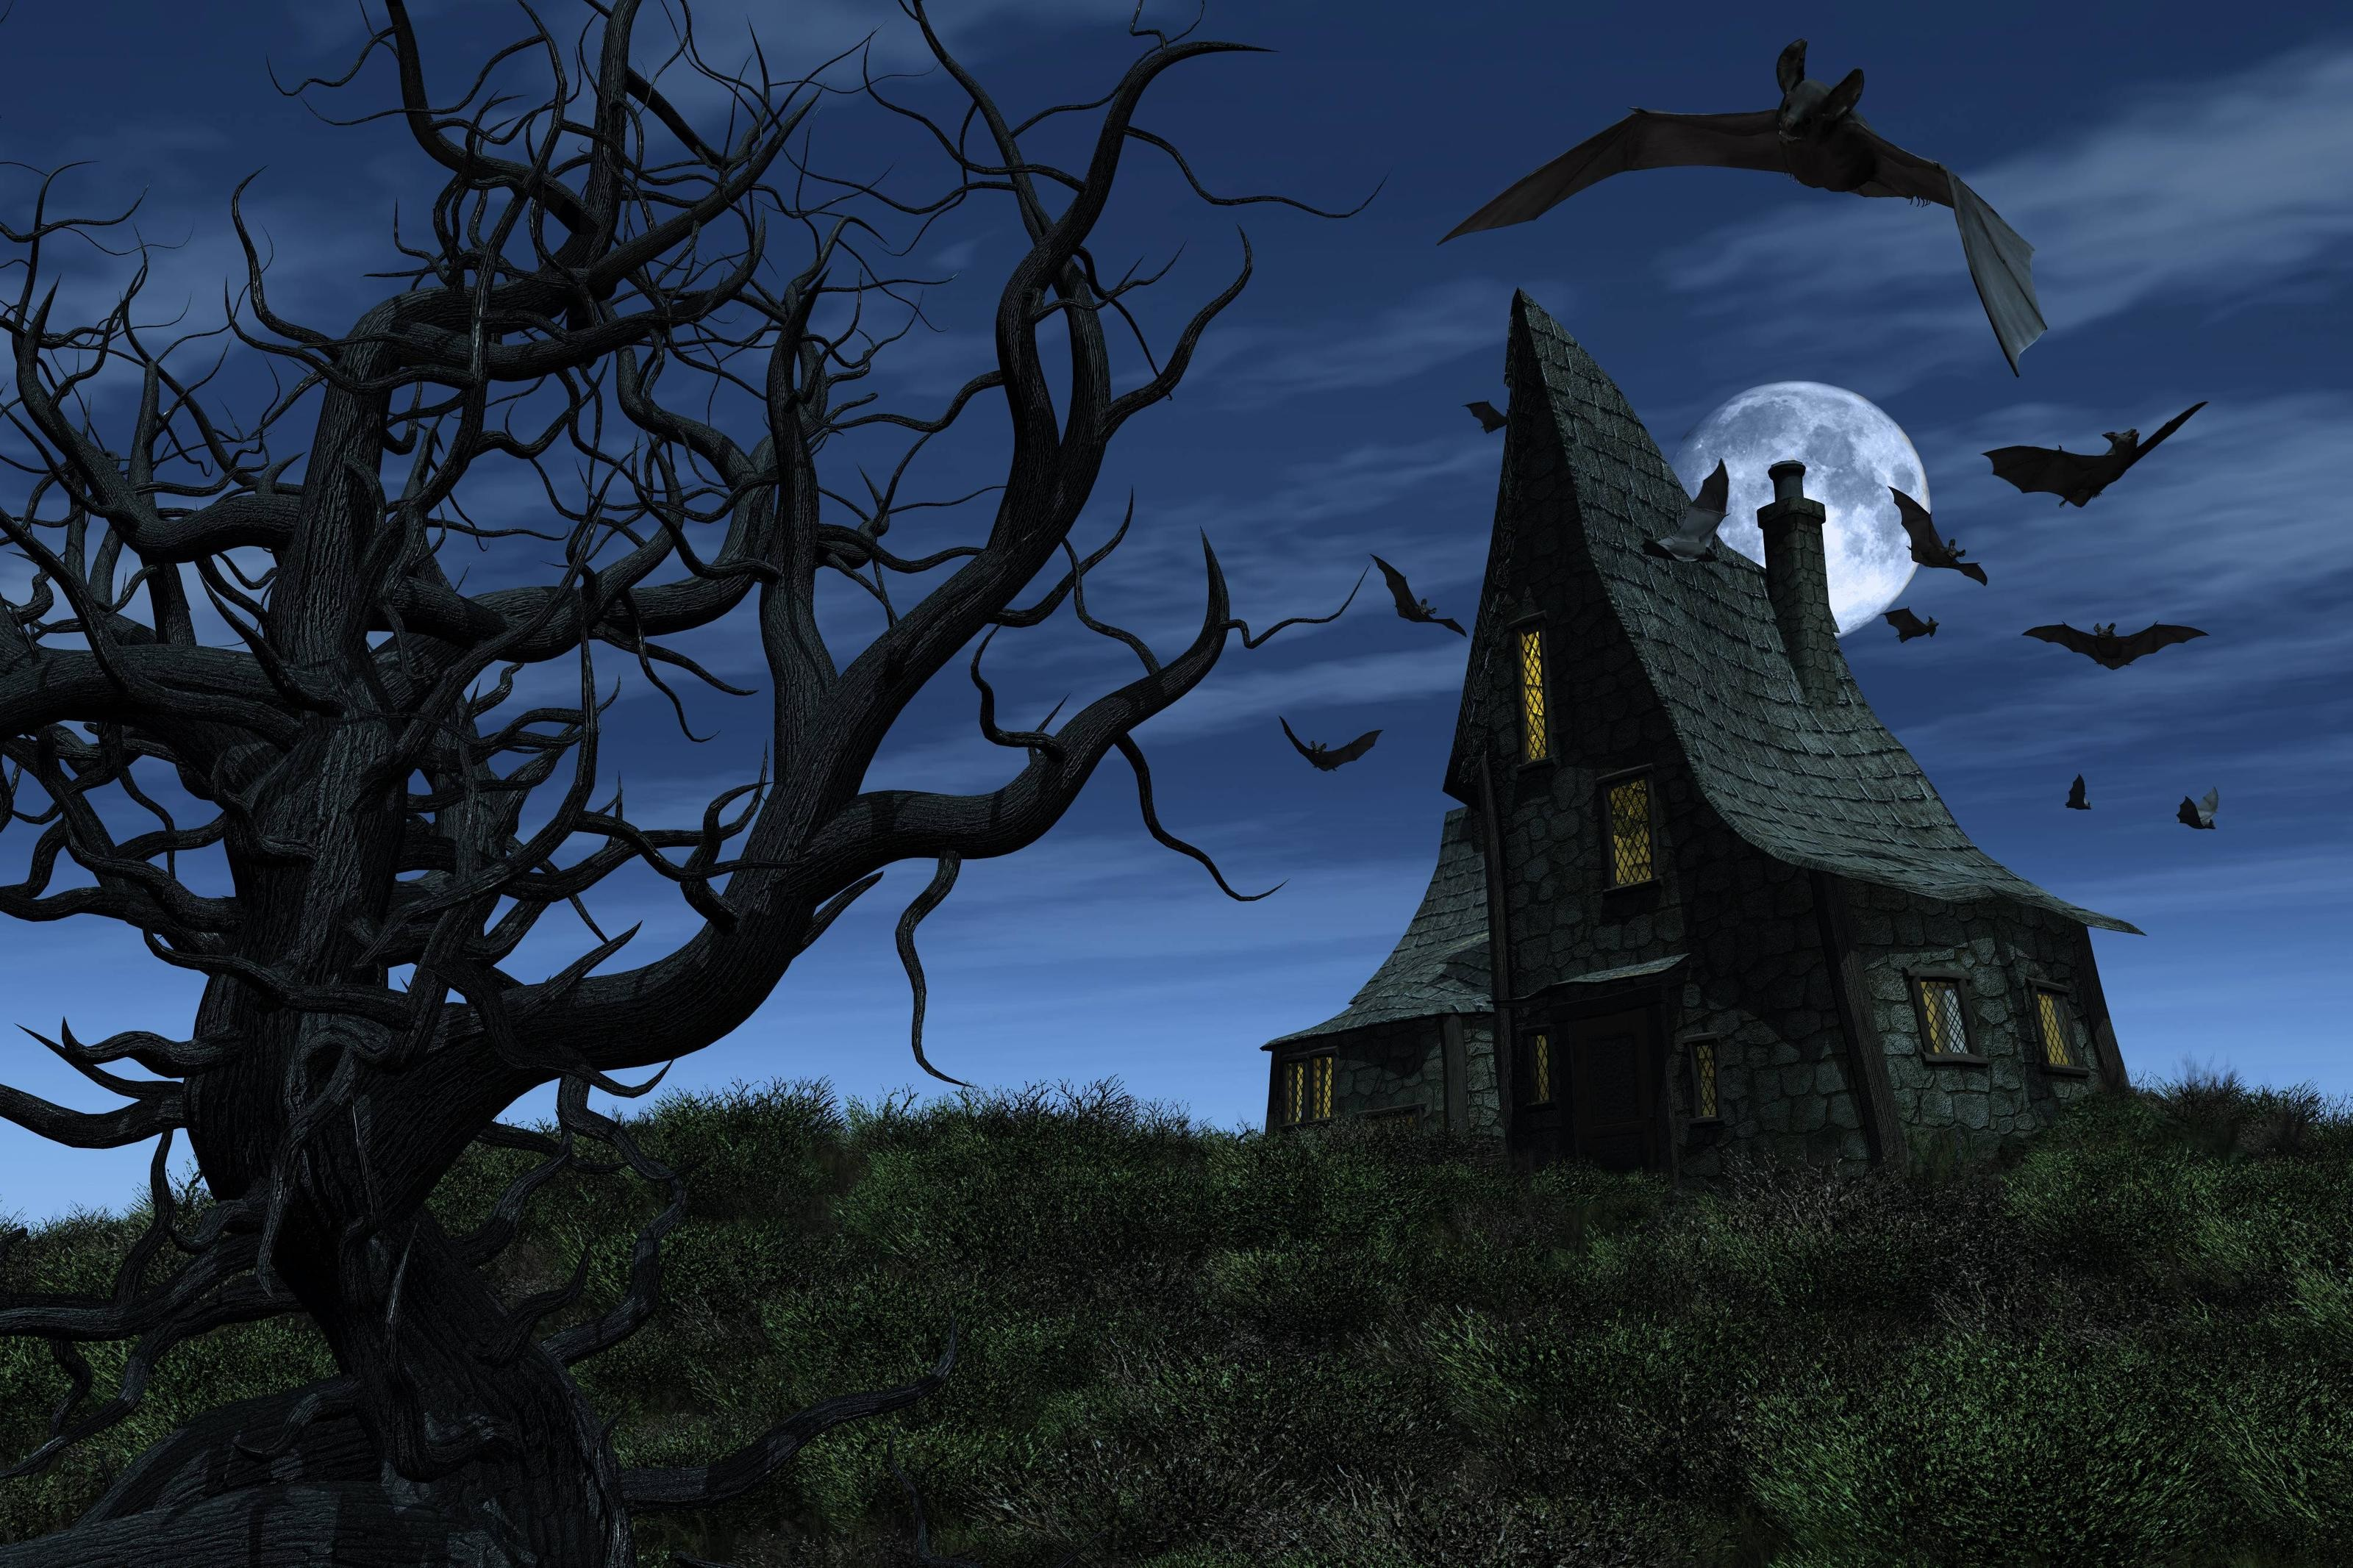 3200x2133 Haunted HD Wallpapers Free Download – Unique HQFX Pics